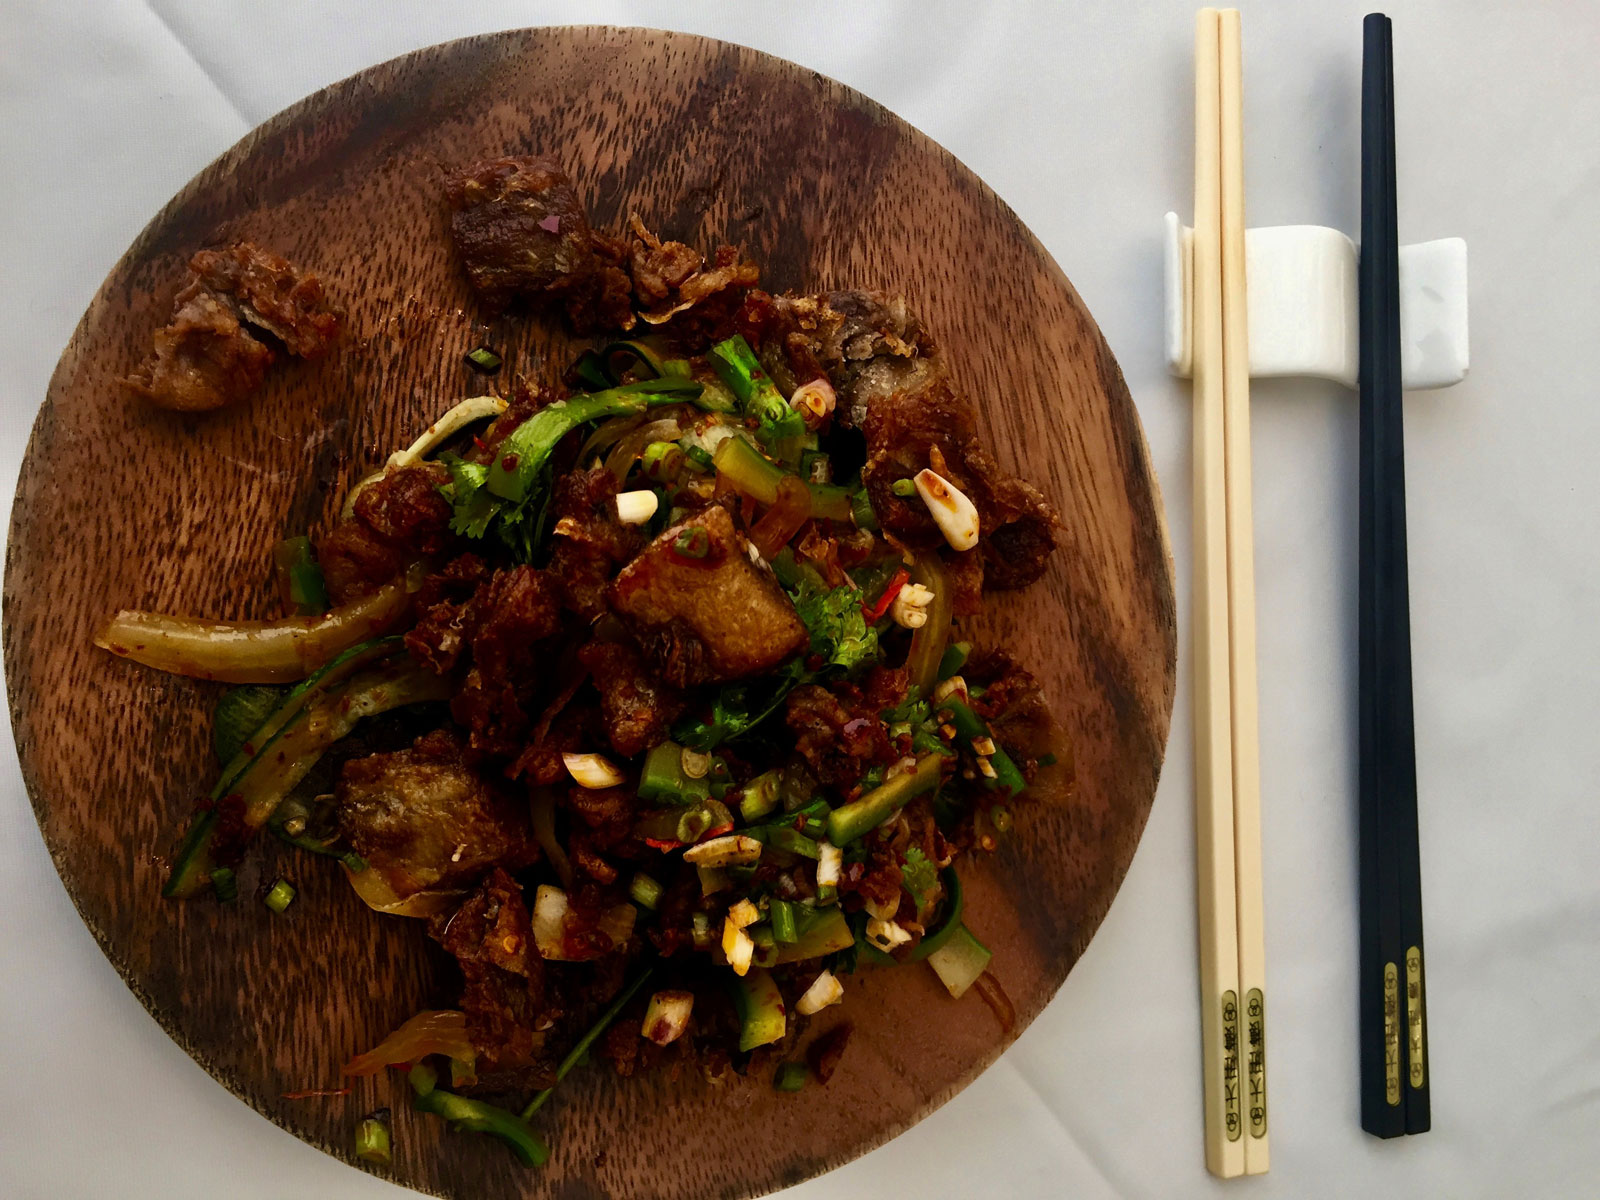 Sichuan Lamb Belly at The Chairman